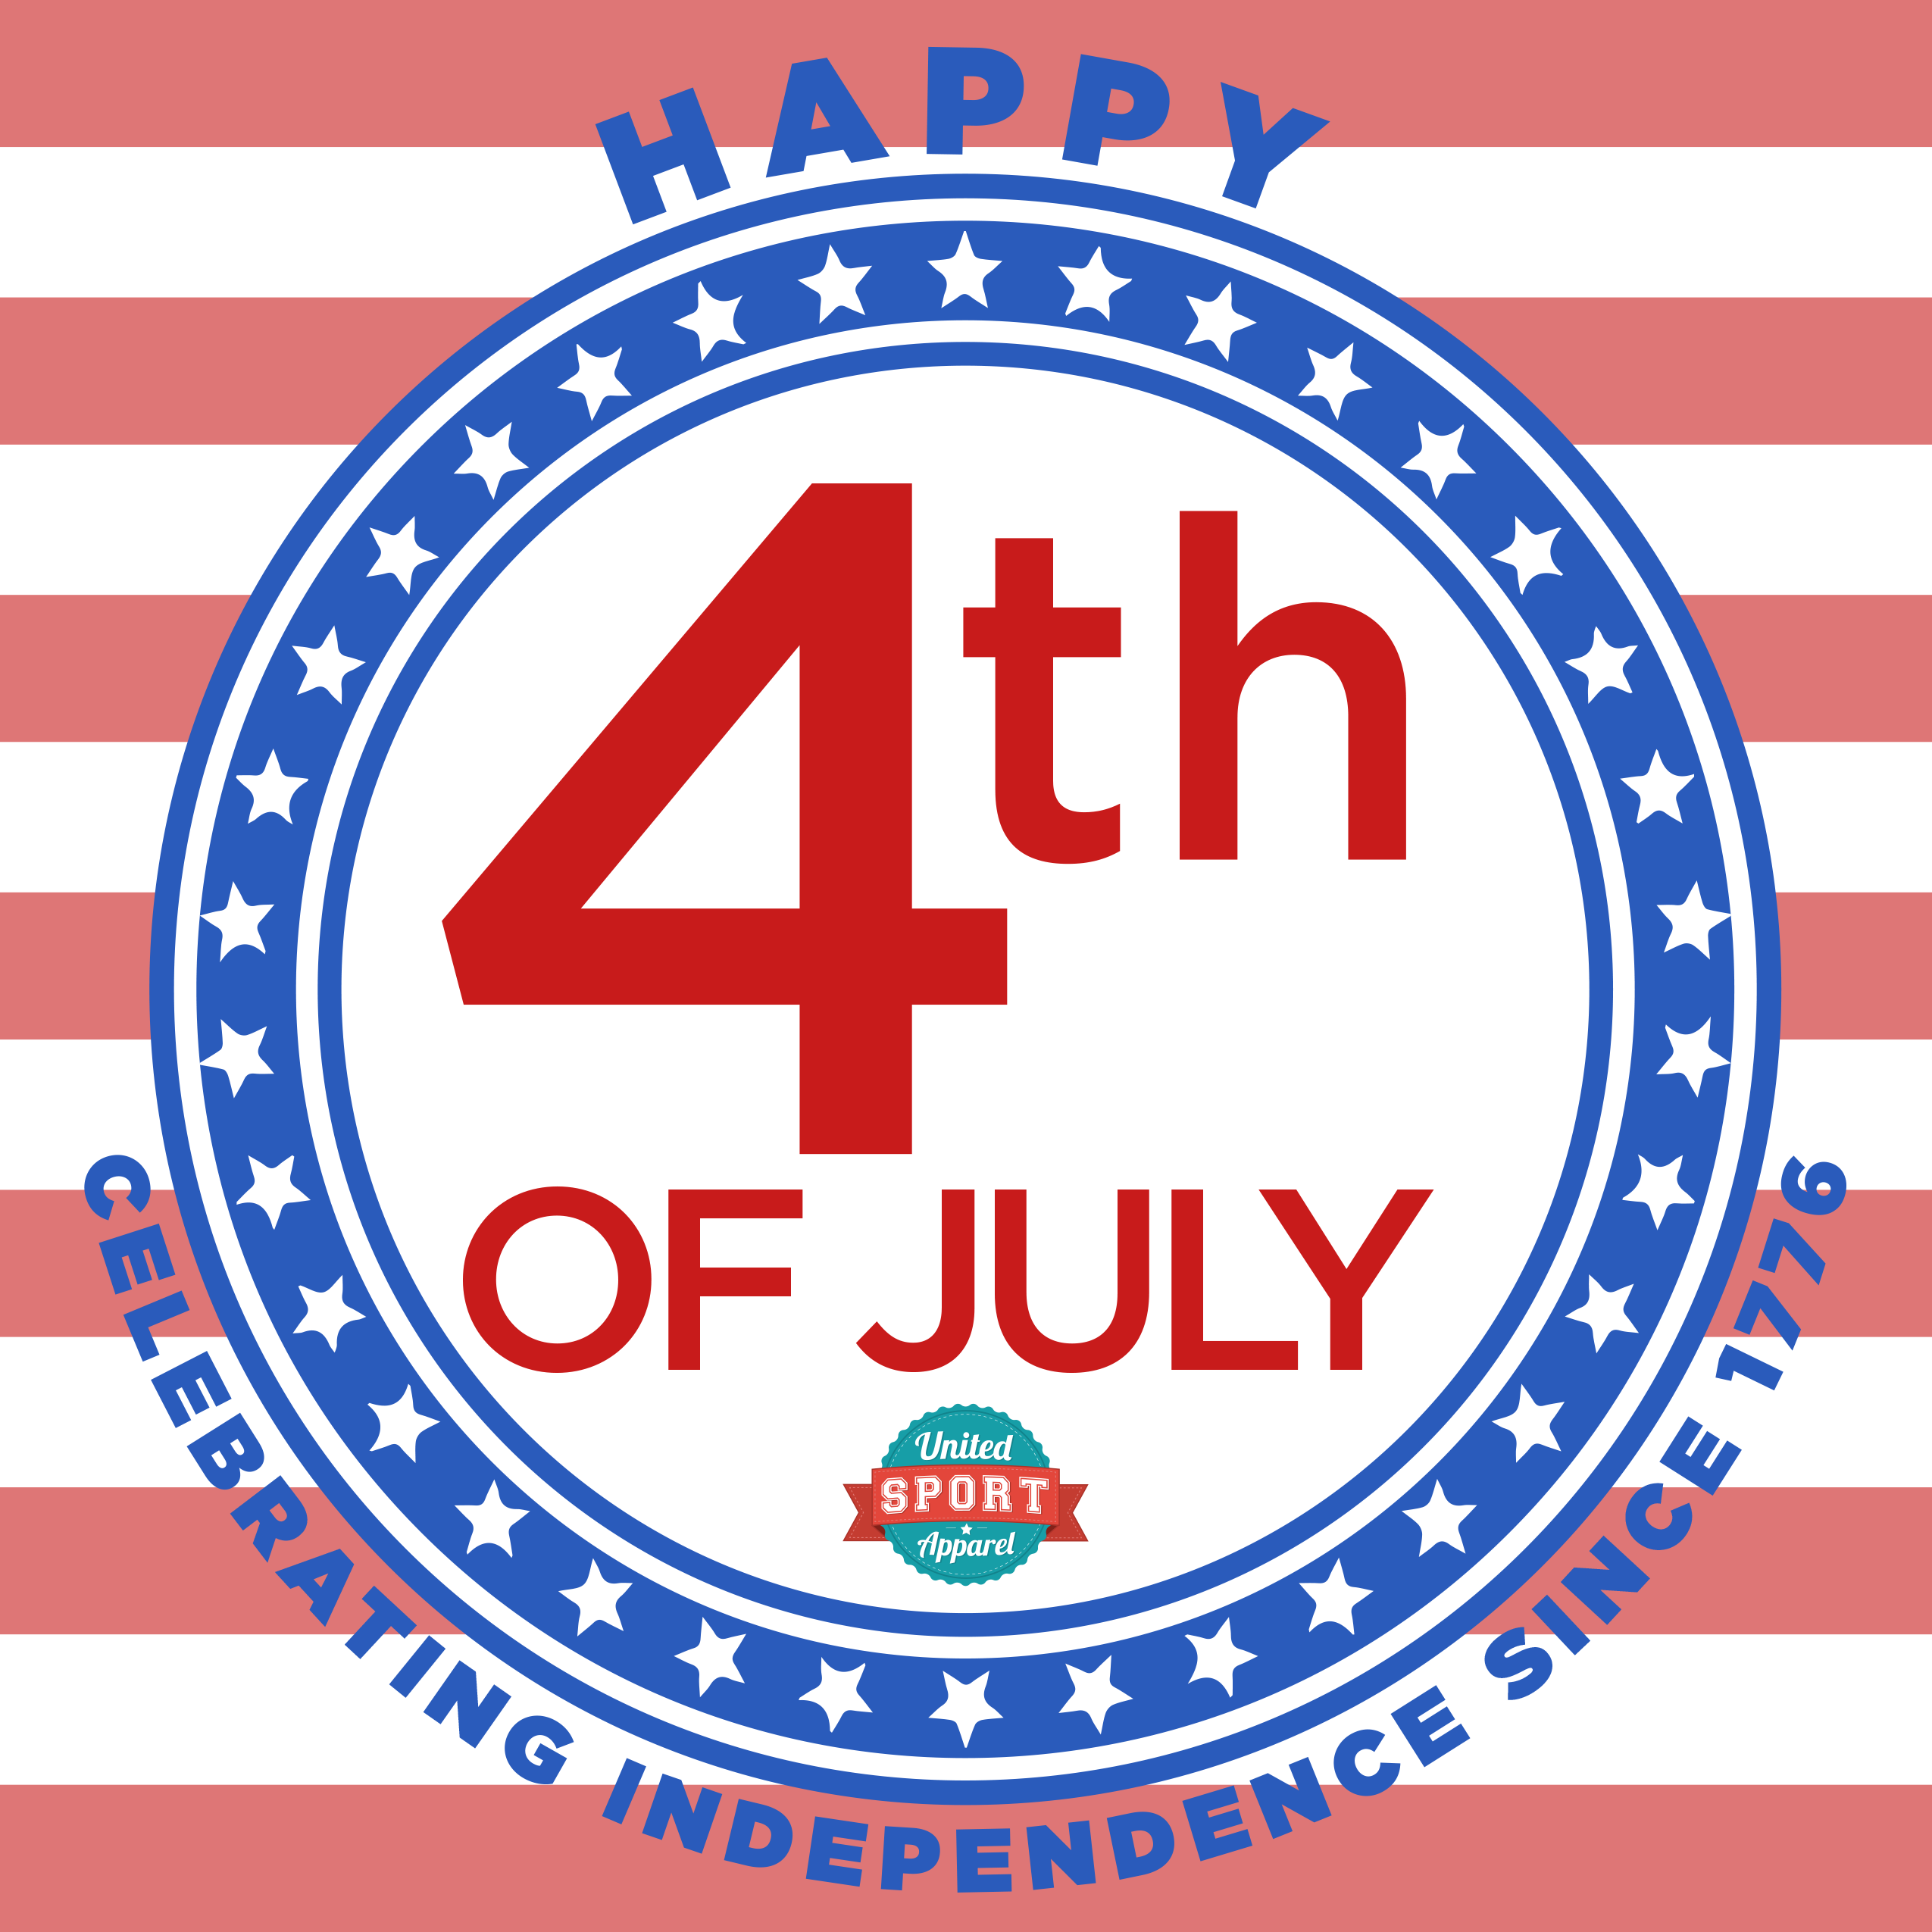 Have a happy and safe Independence Day, from all of us at